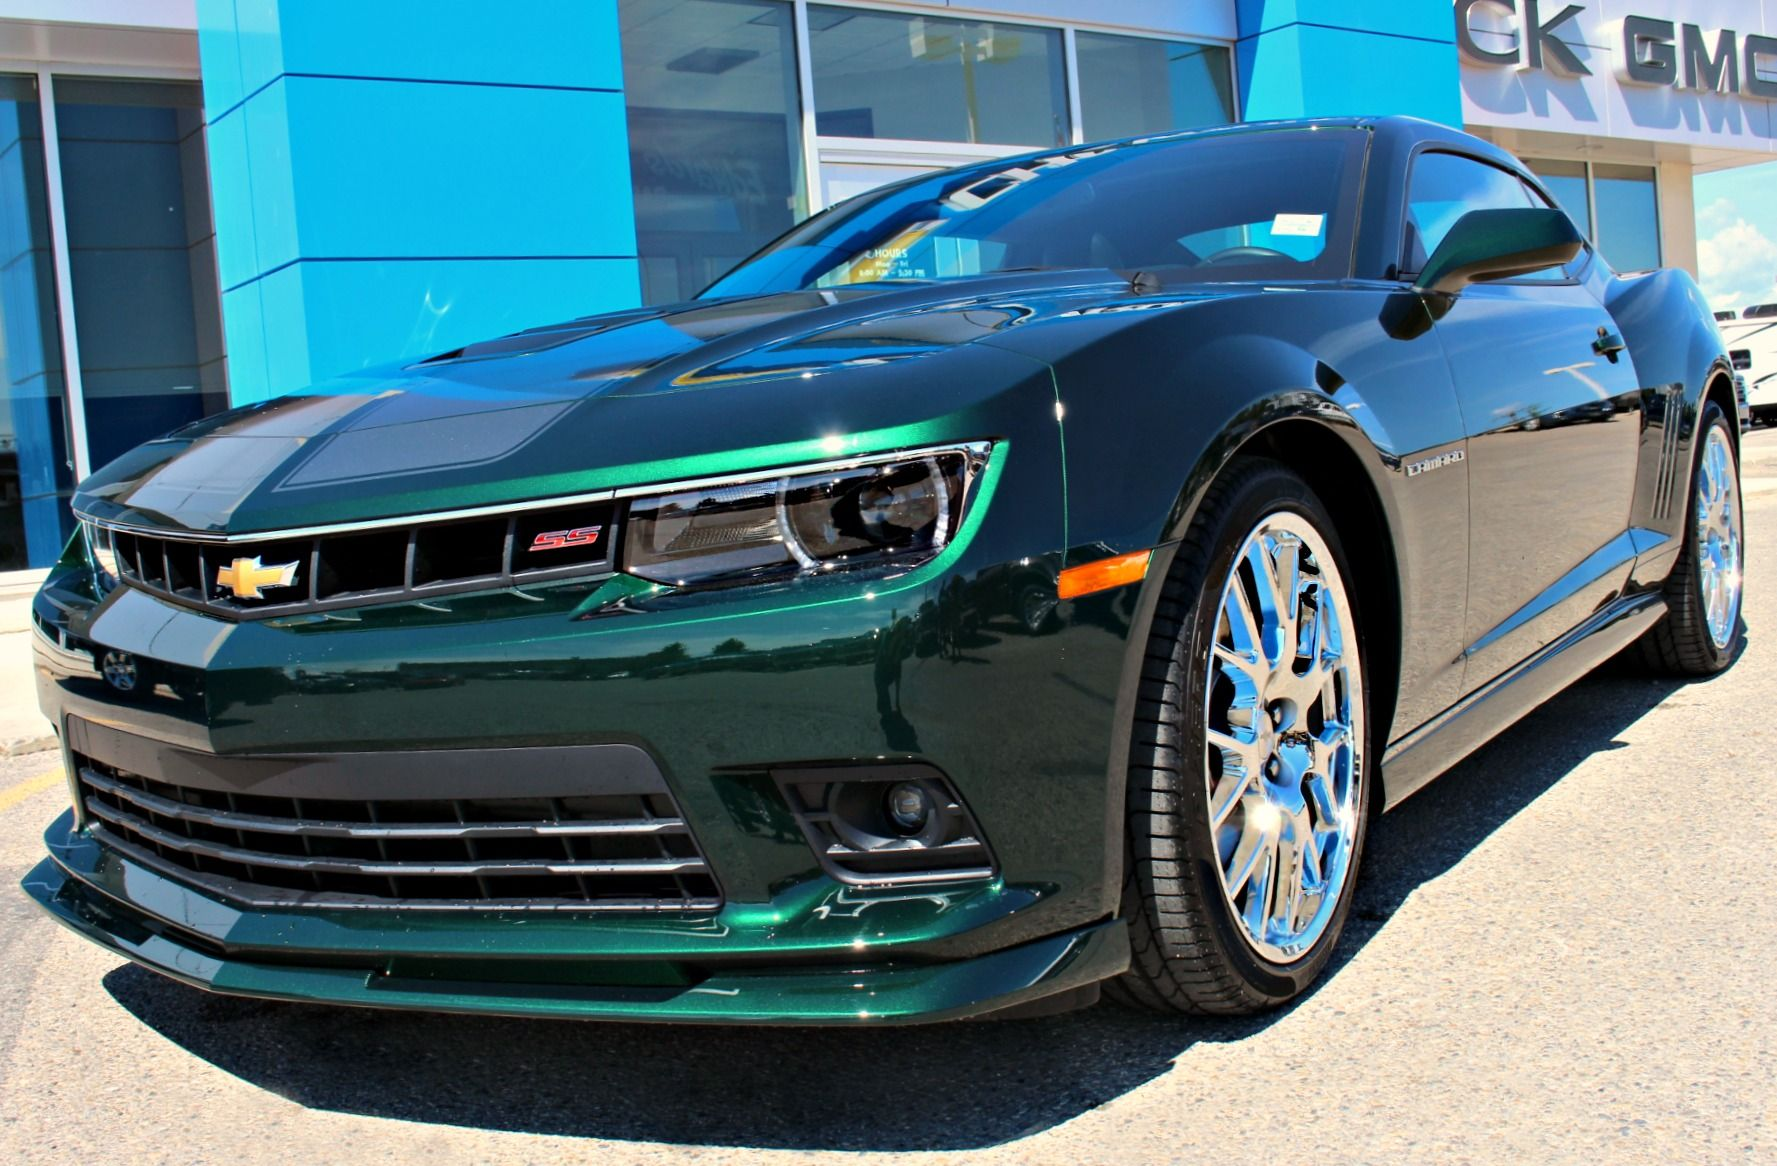 Look What Just Showed Up In Time For Summer The Special Edition Green Flash 2015 Camaro 2ss Rs Check Our P Custom Camaro Luxury Cars Range Rover Camaro